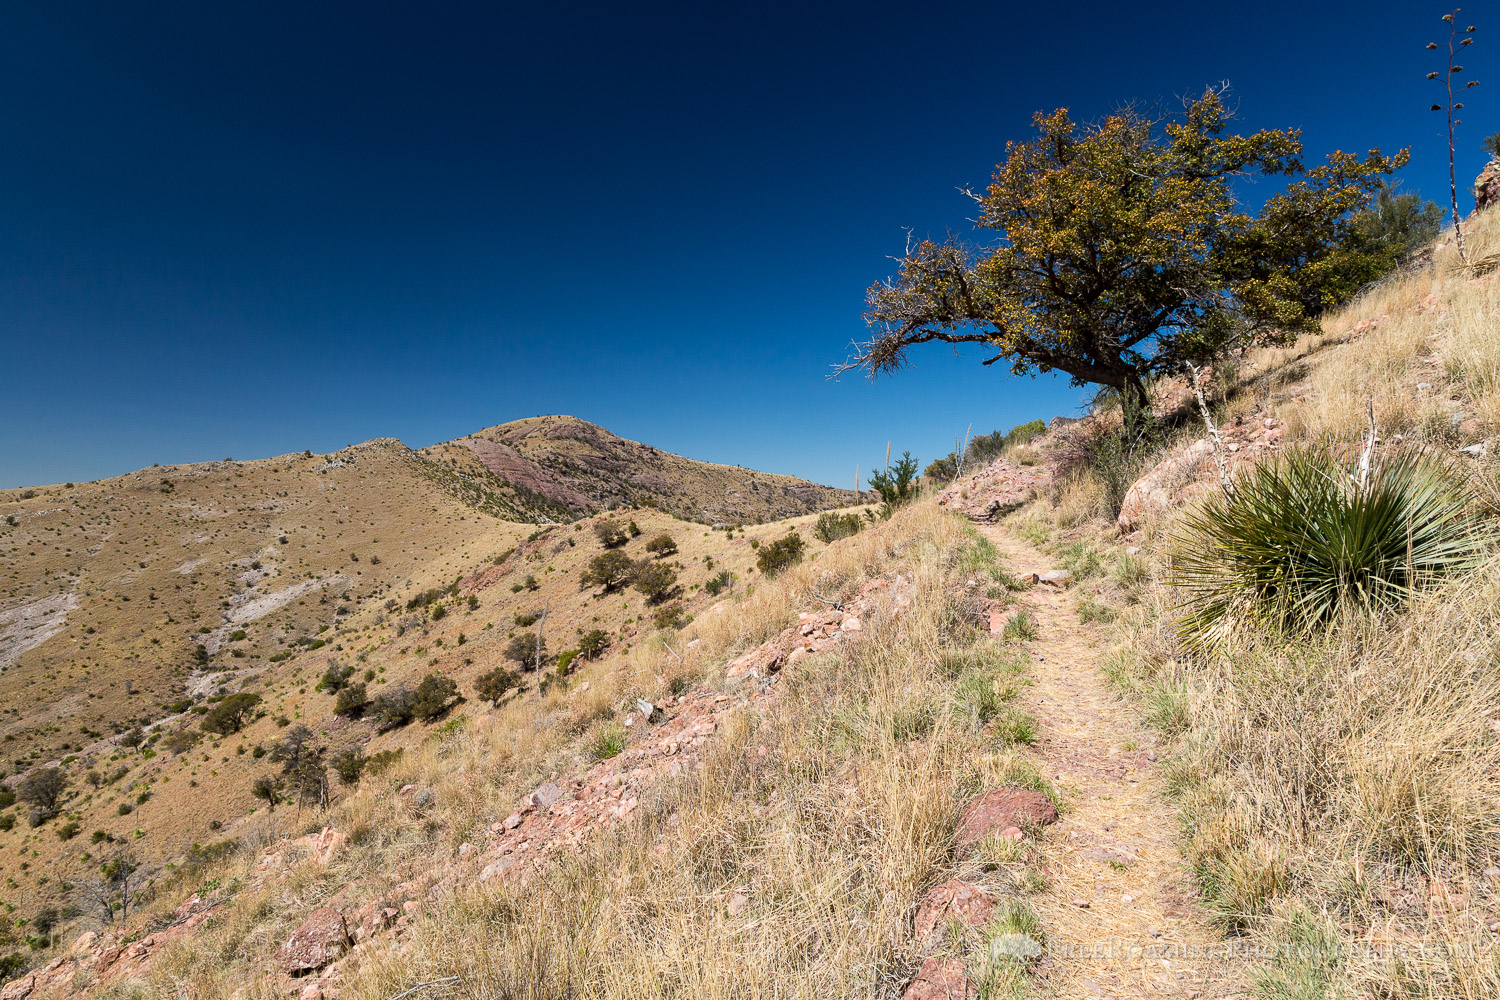 Yaqui Ridge Trail